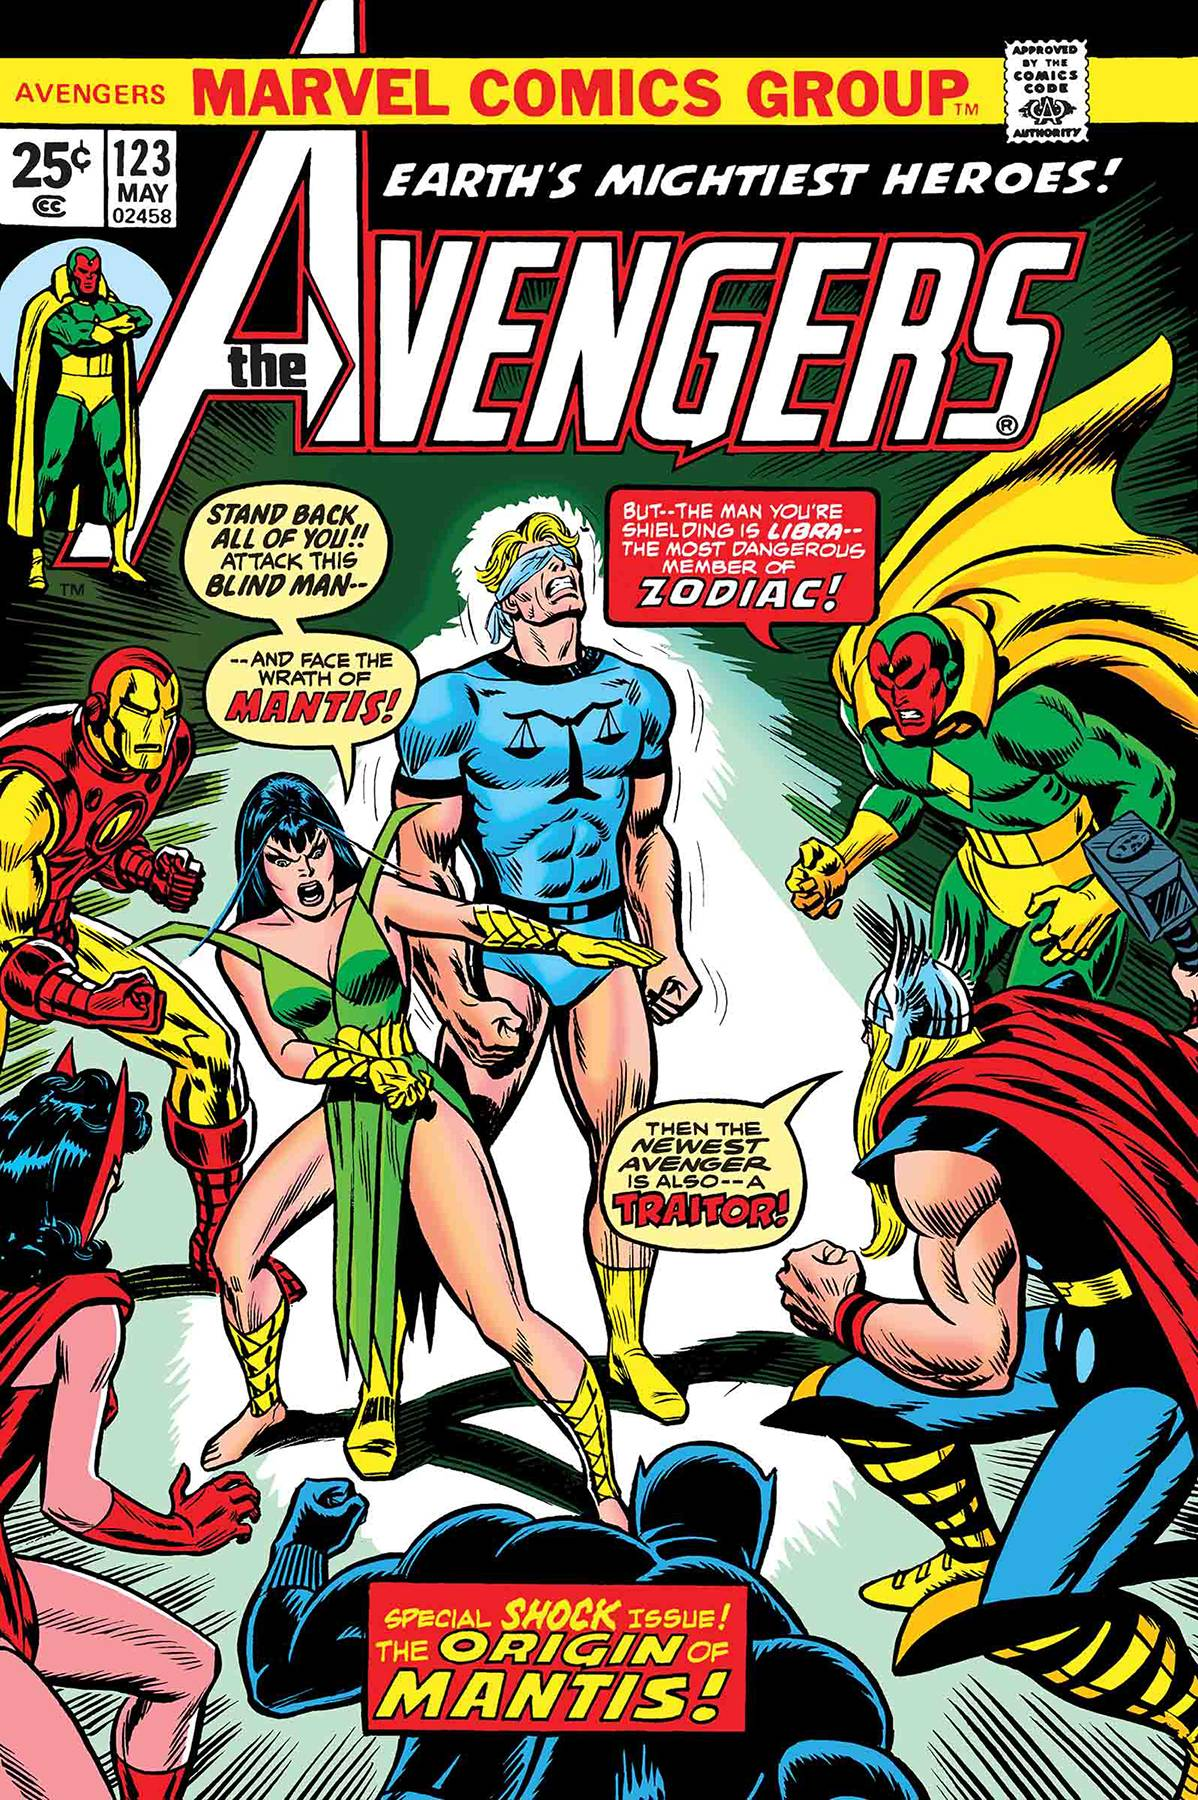 TRUE BELIEVERS AVENGERS ORIGIN OF MANTIS 1.jpg